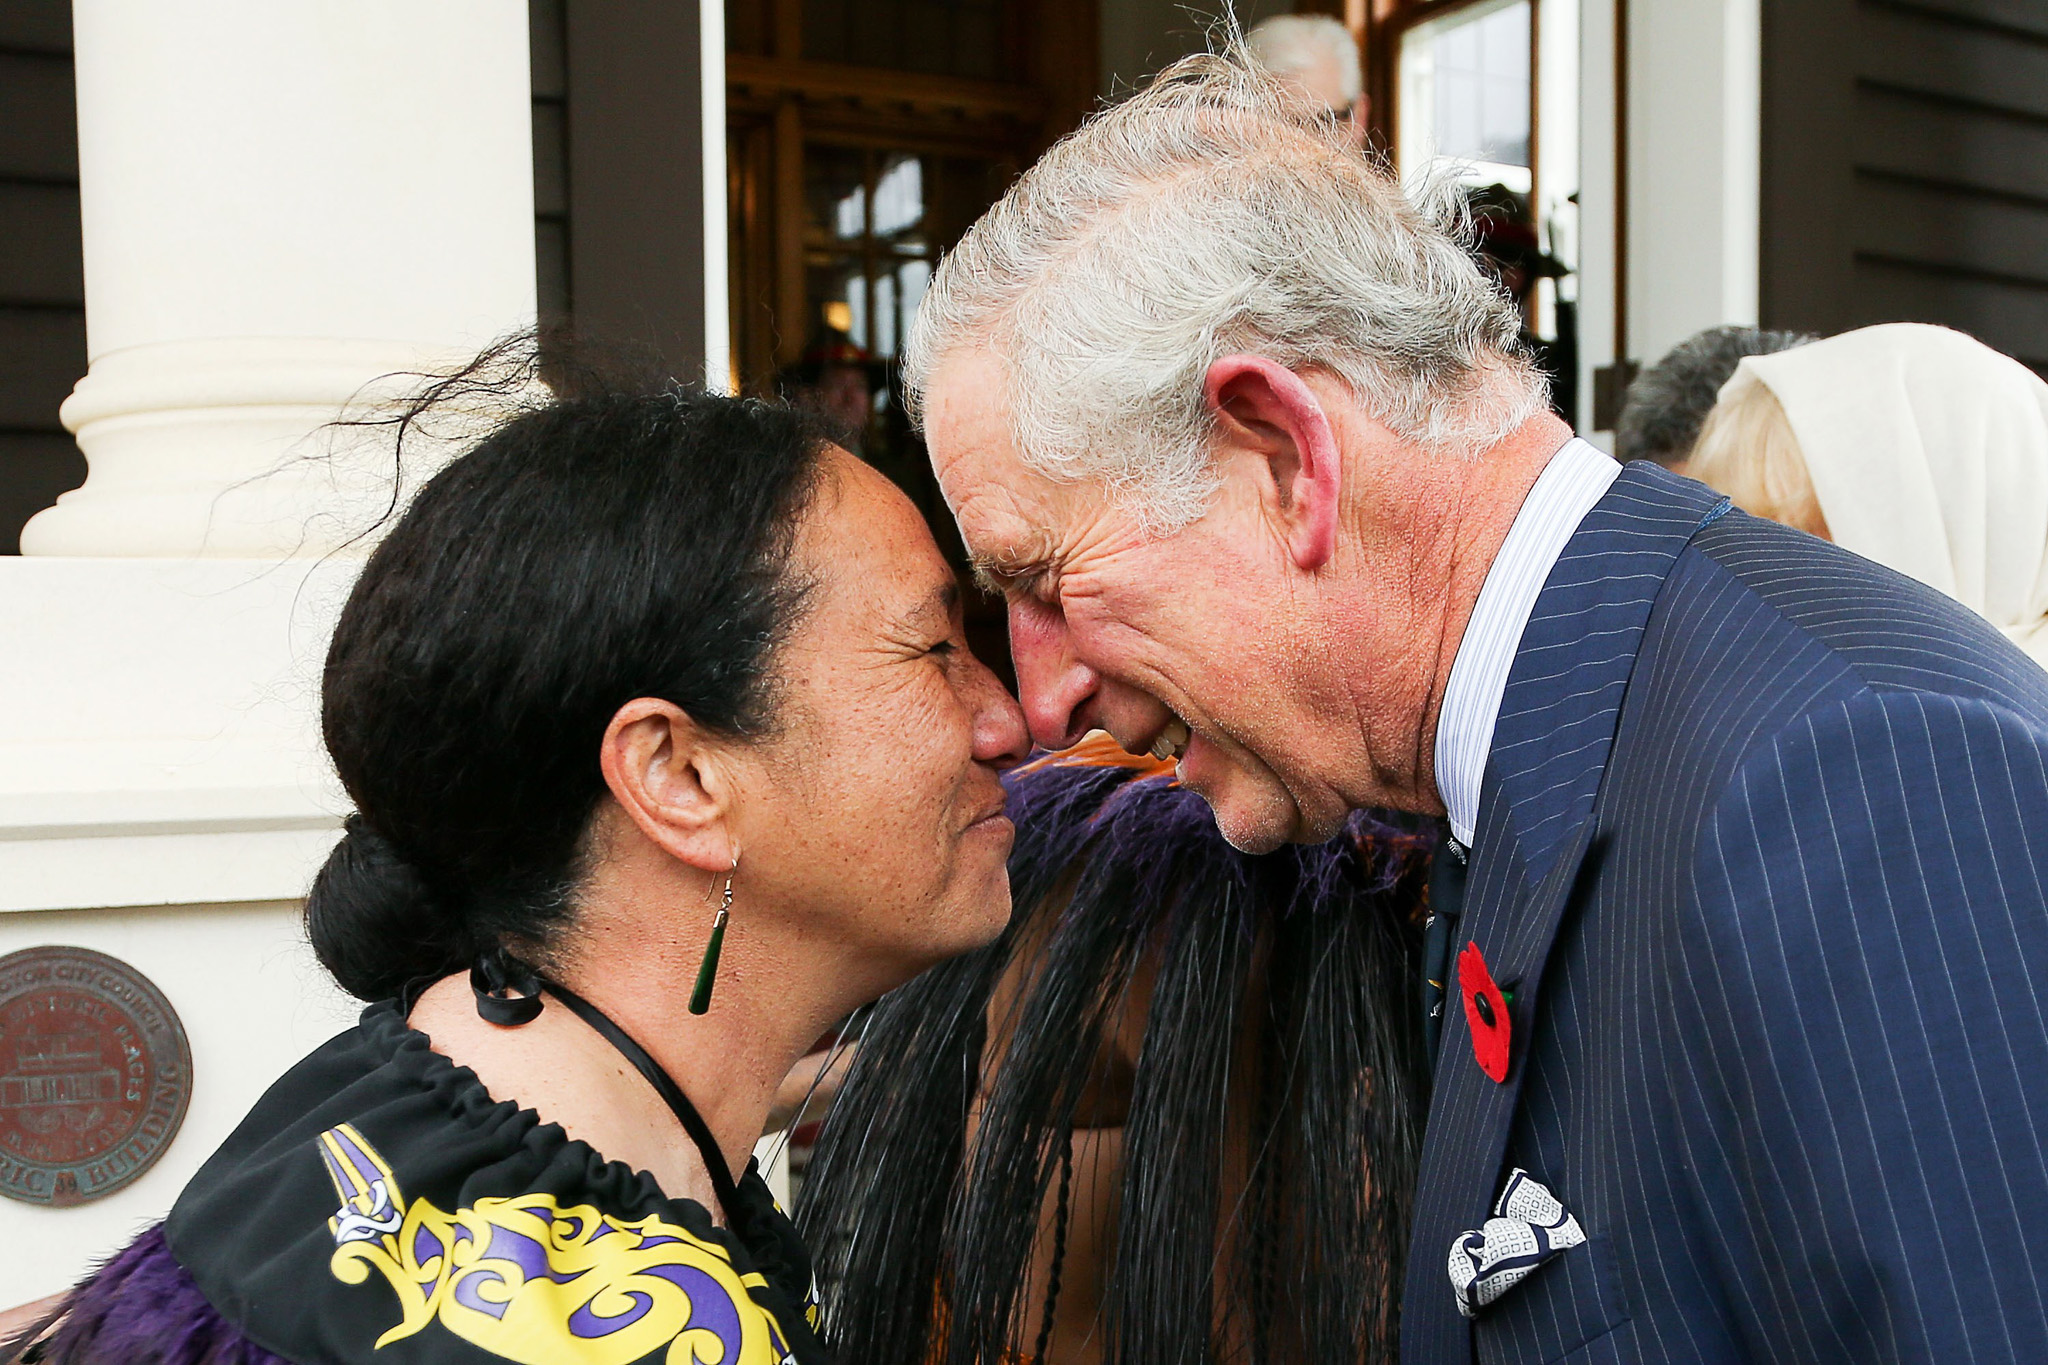 TOPSHOTS Britain's Prince Charles is wel...TOPSHOTS Britain's Prince Charles is welcomed with a hongi from New Zealand Defence Force Flight Sergeant Wai Paenga during a welcome ceremony at Government House in Wellington on November 4, 2015. Prince Charles with his wife Camilla are on a two-week tour of New Zealand and Australia. AFP PHOTO / Hagen Hopkins / POOLHagen Hopkins/AFP/Getty Images